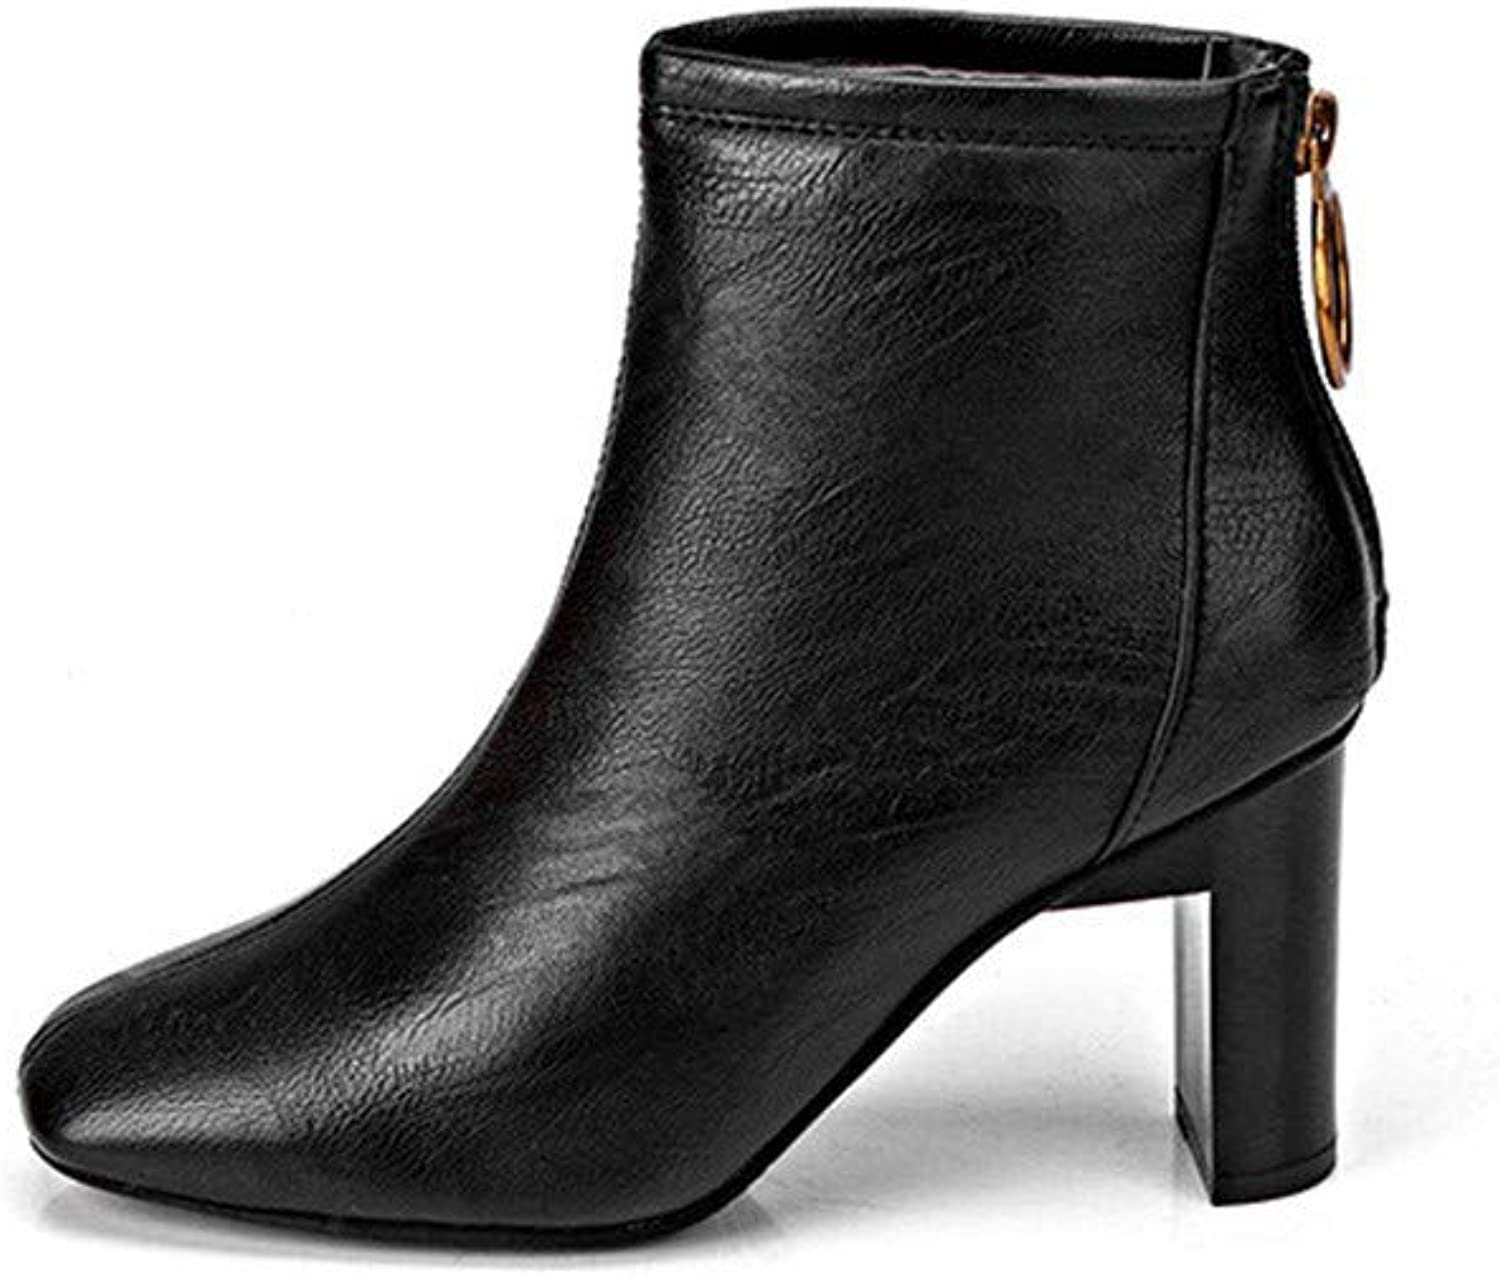 Women Dress High-Heeled Boots, Womens Martin Boots shoes Casual Outdoors Winter shoes